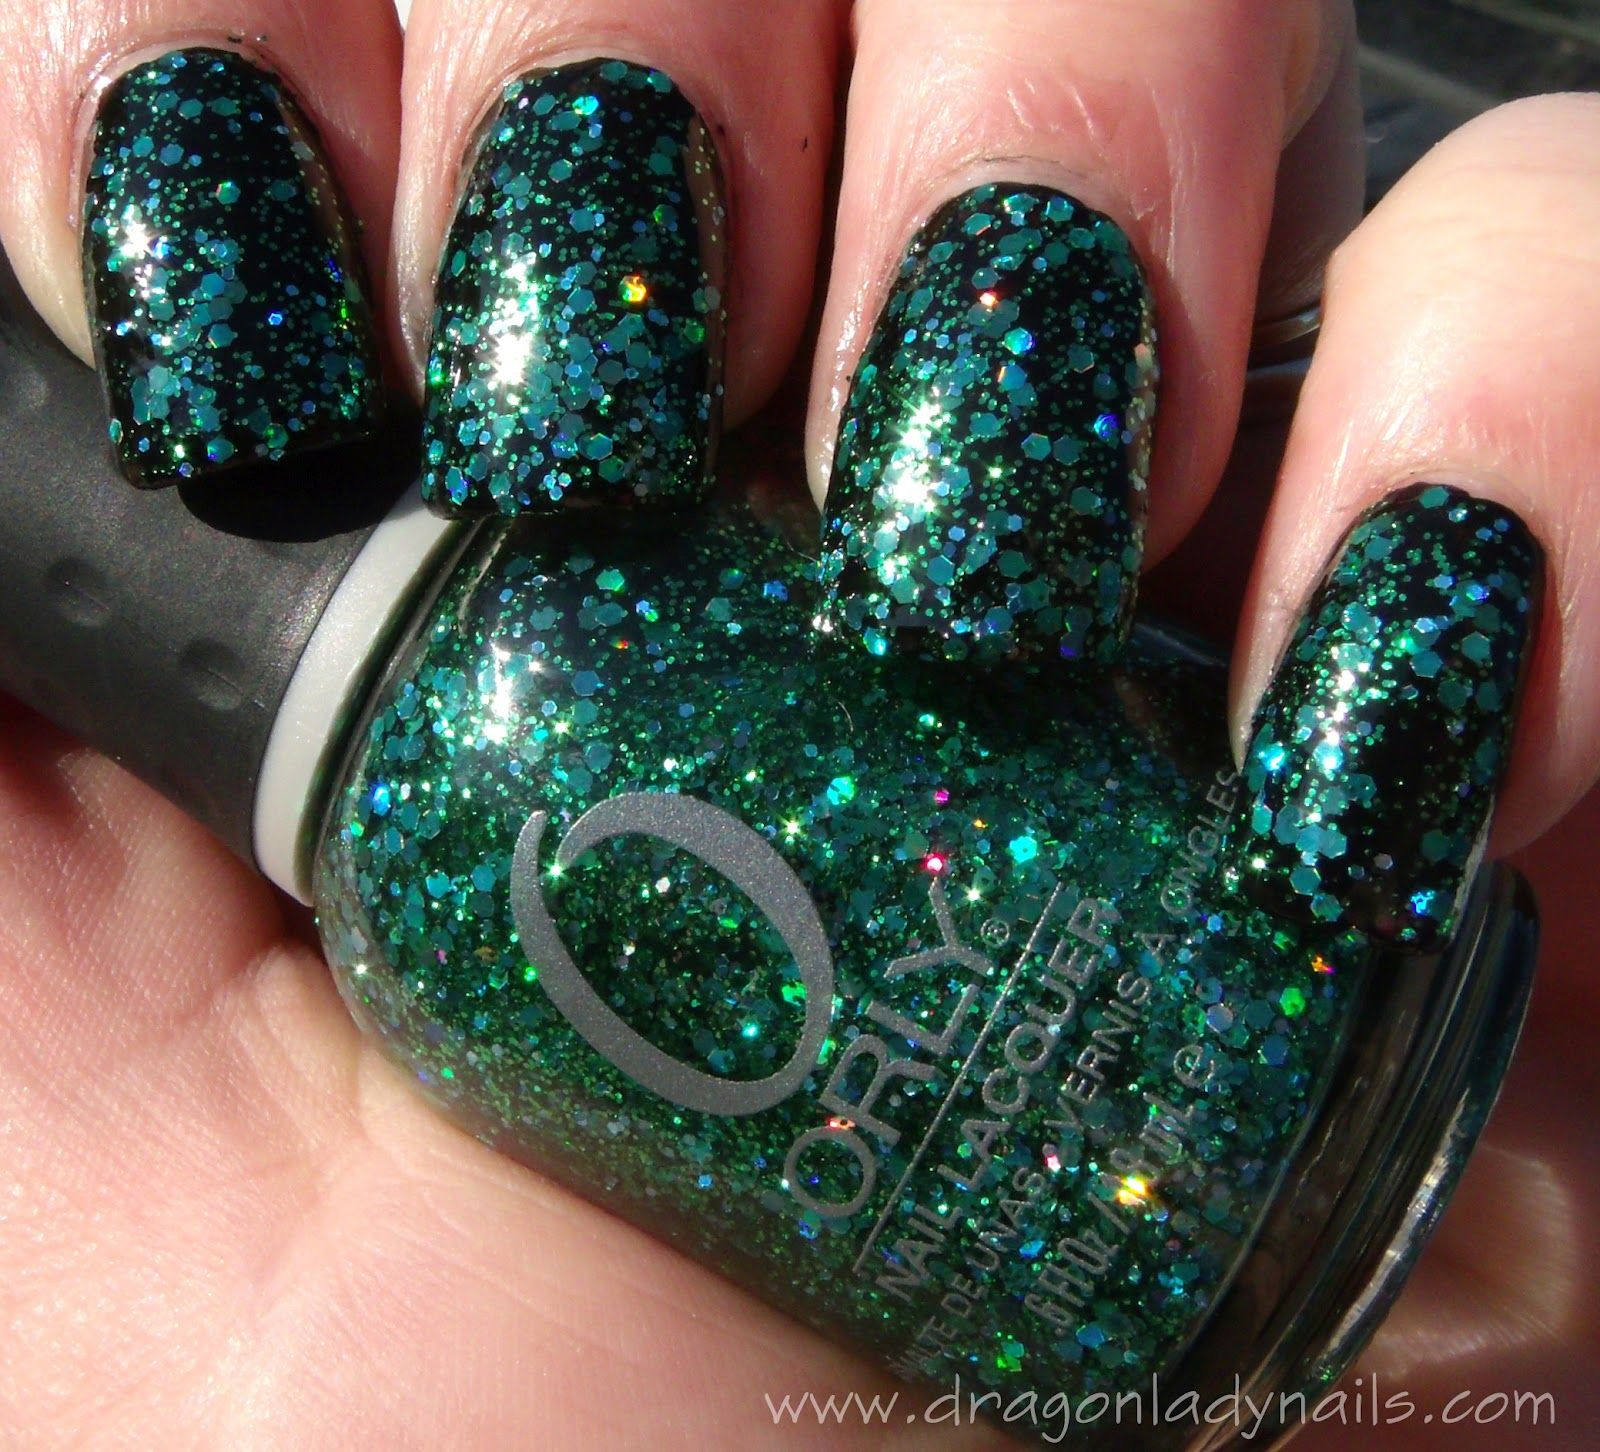 Orly Mermaid Tale Dragon Lady Nails